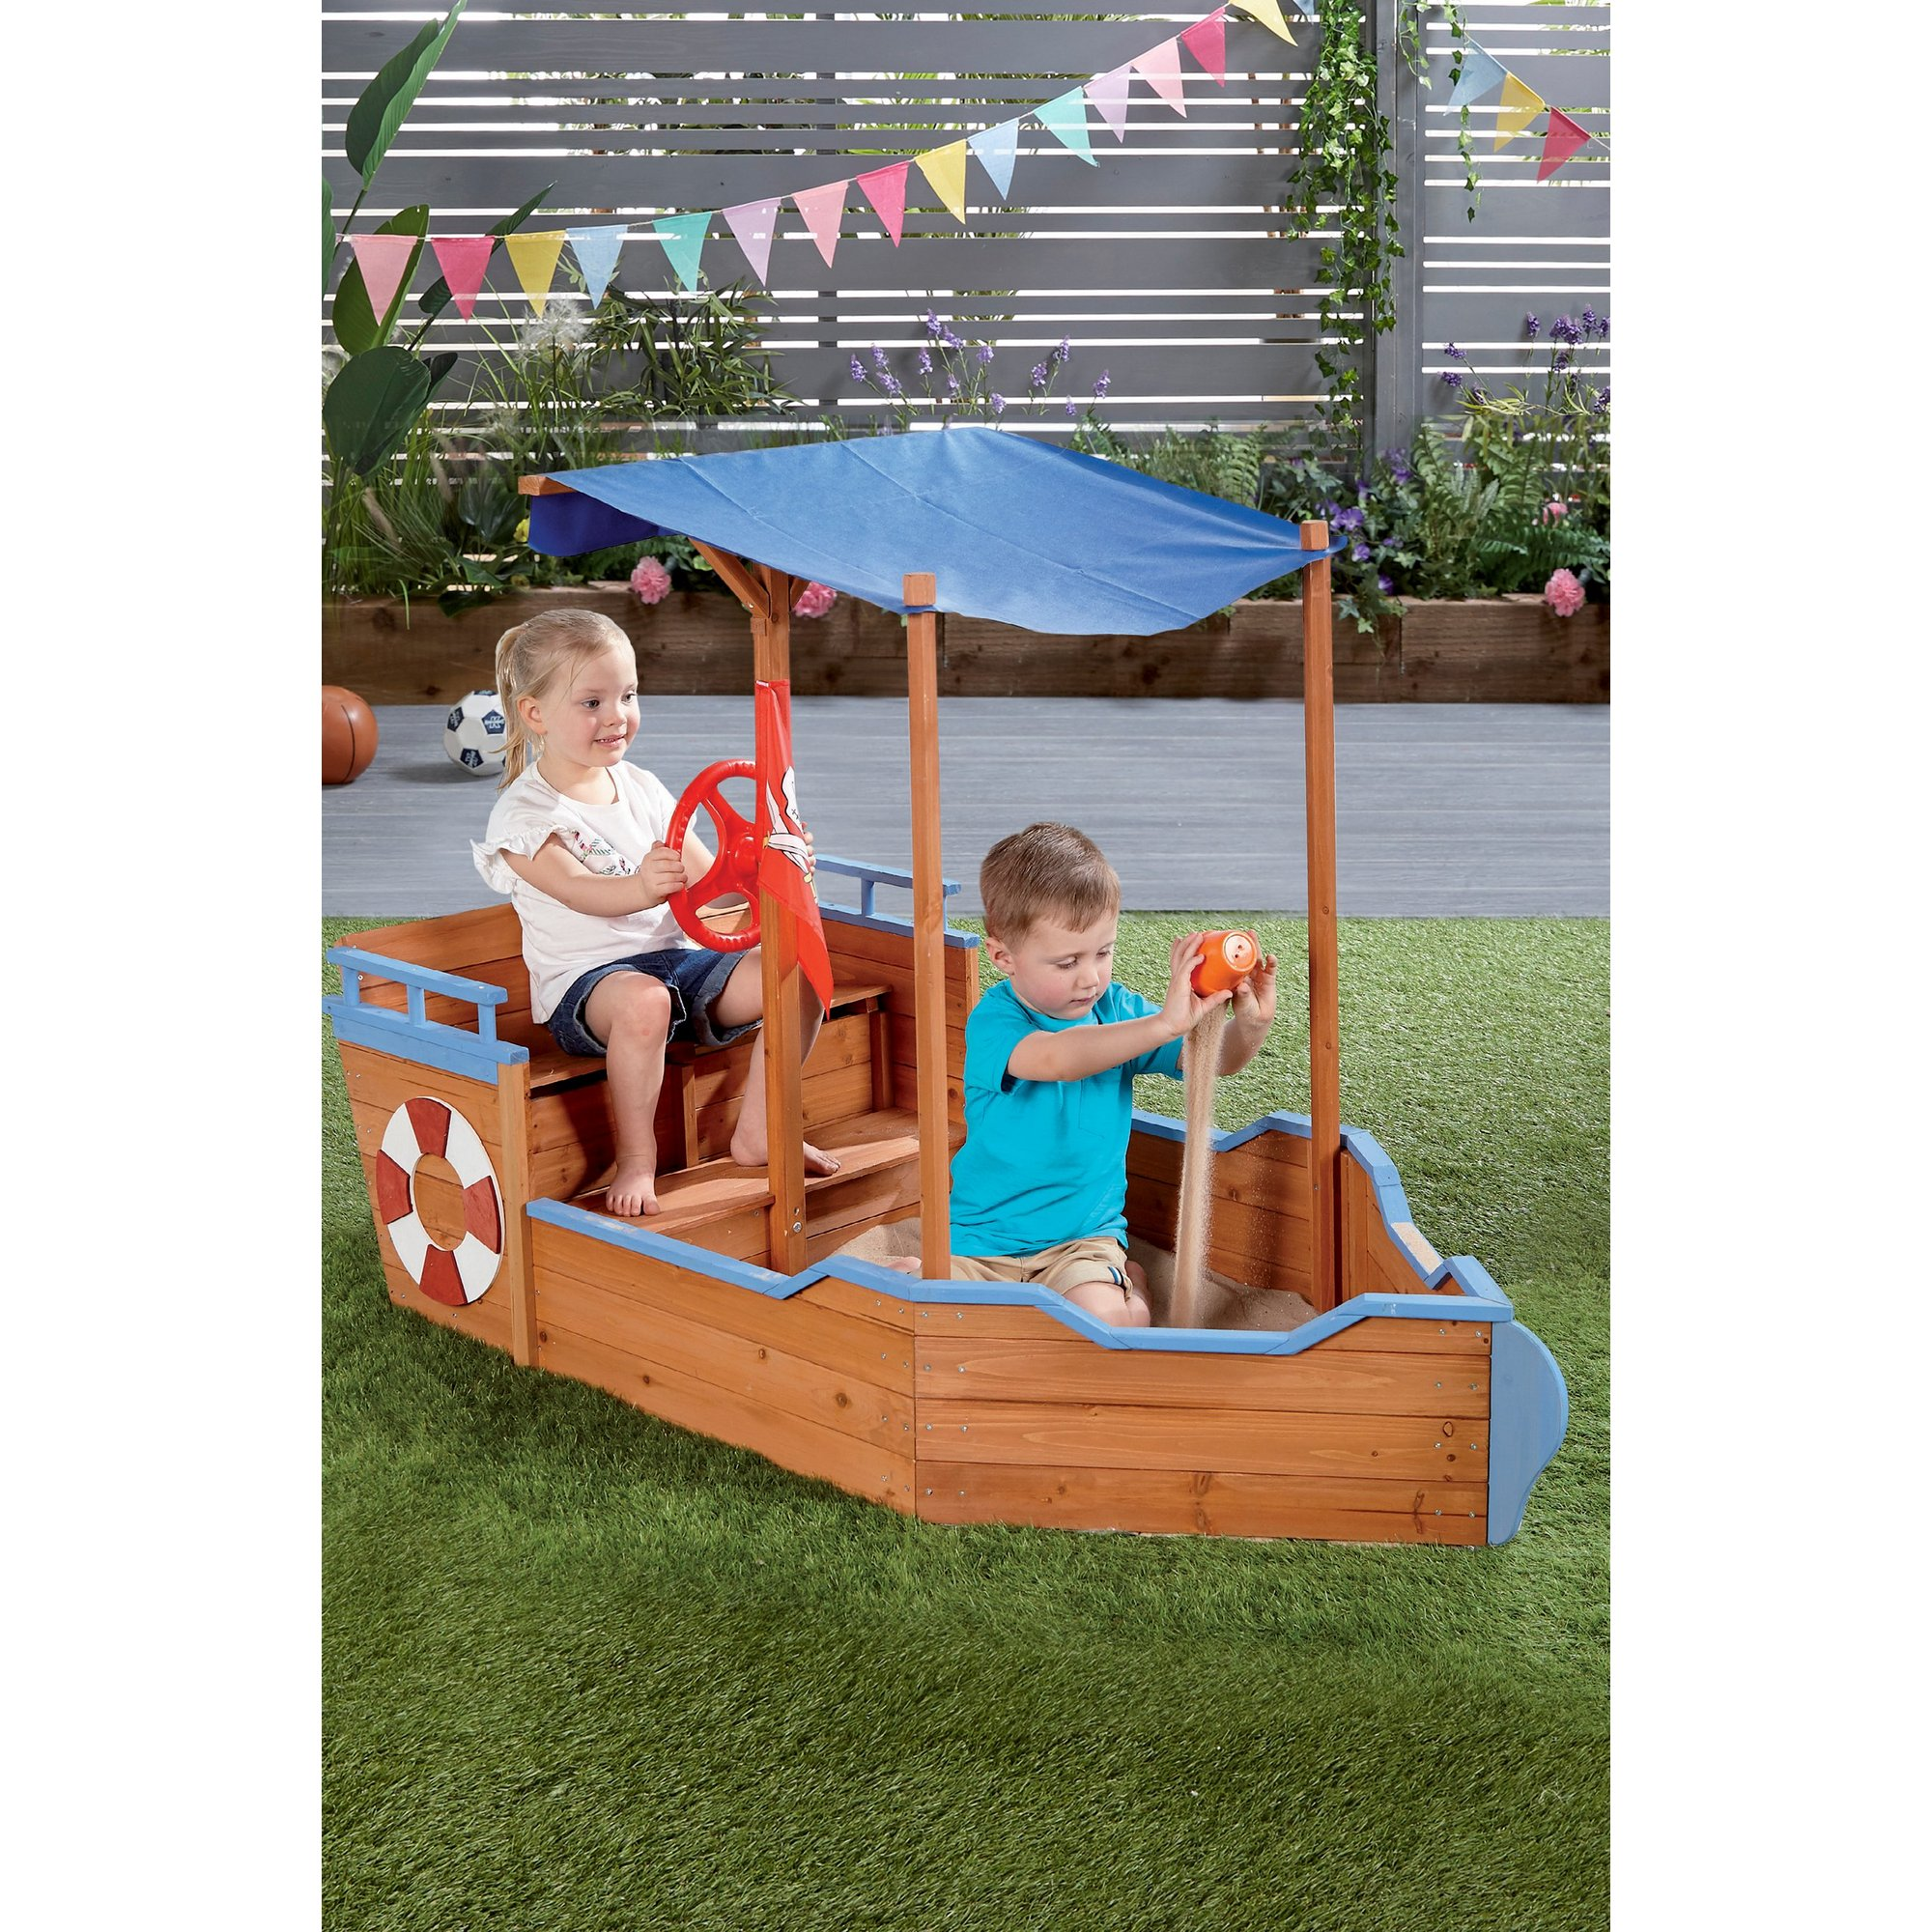 Image of Wooden Pirate Ship Sandpit and Canopy